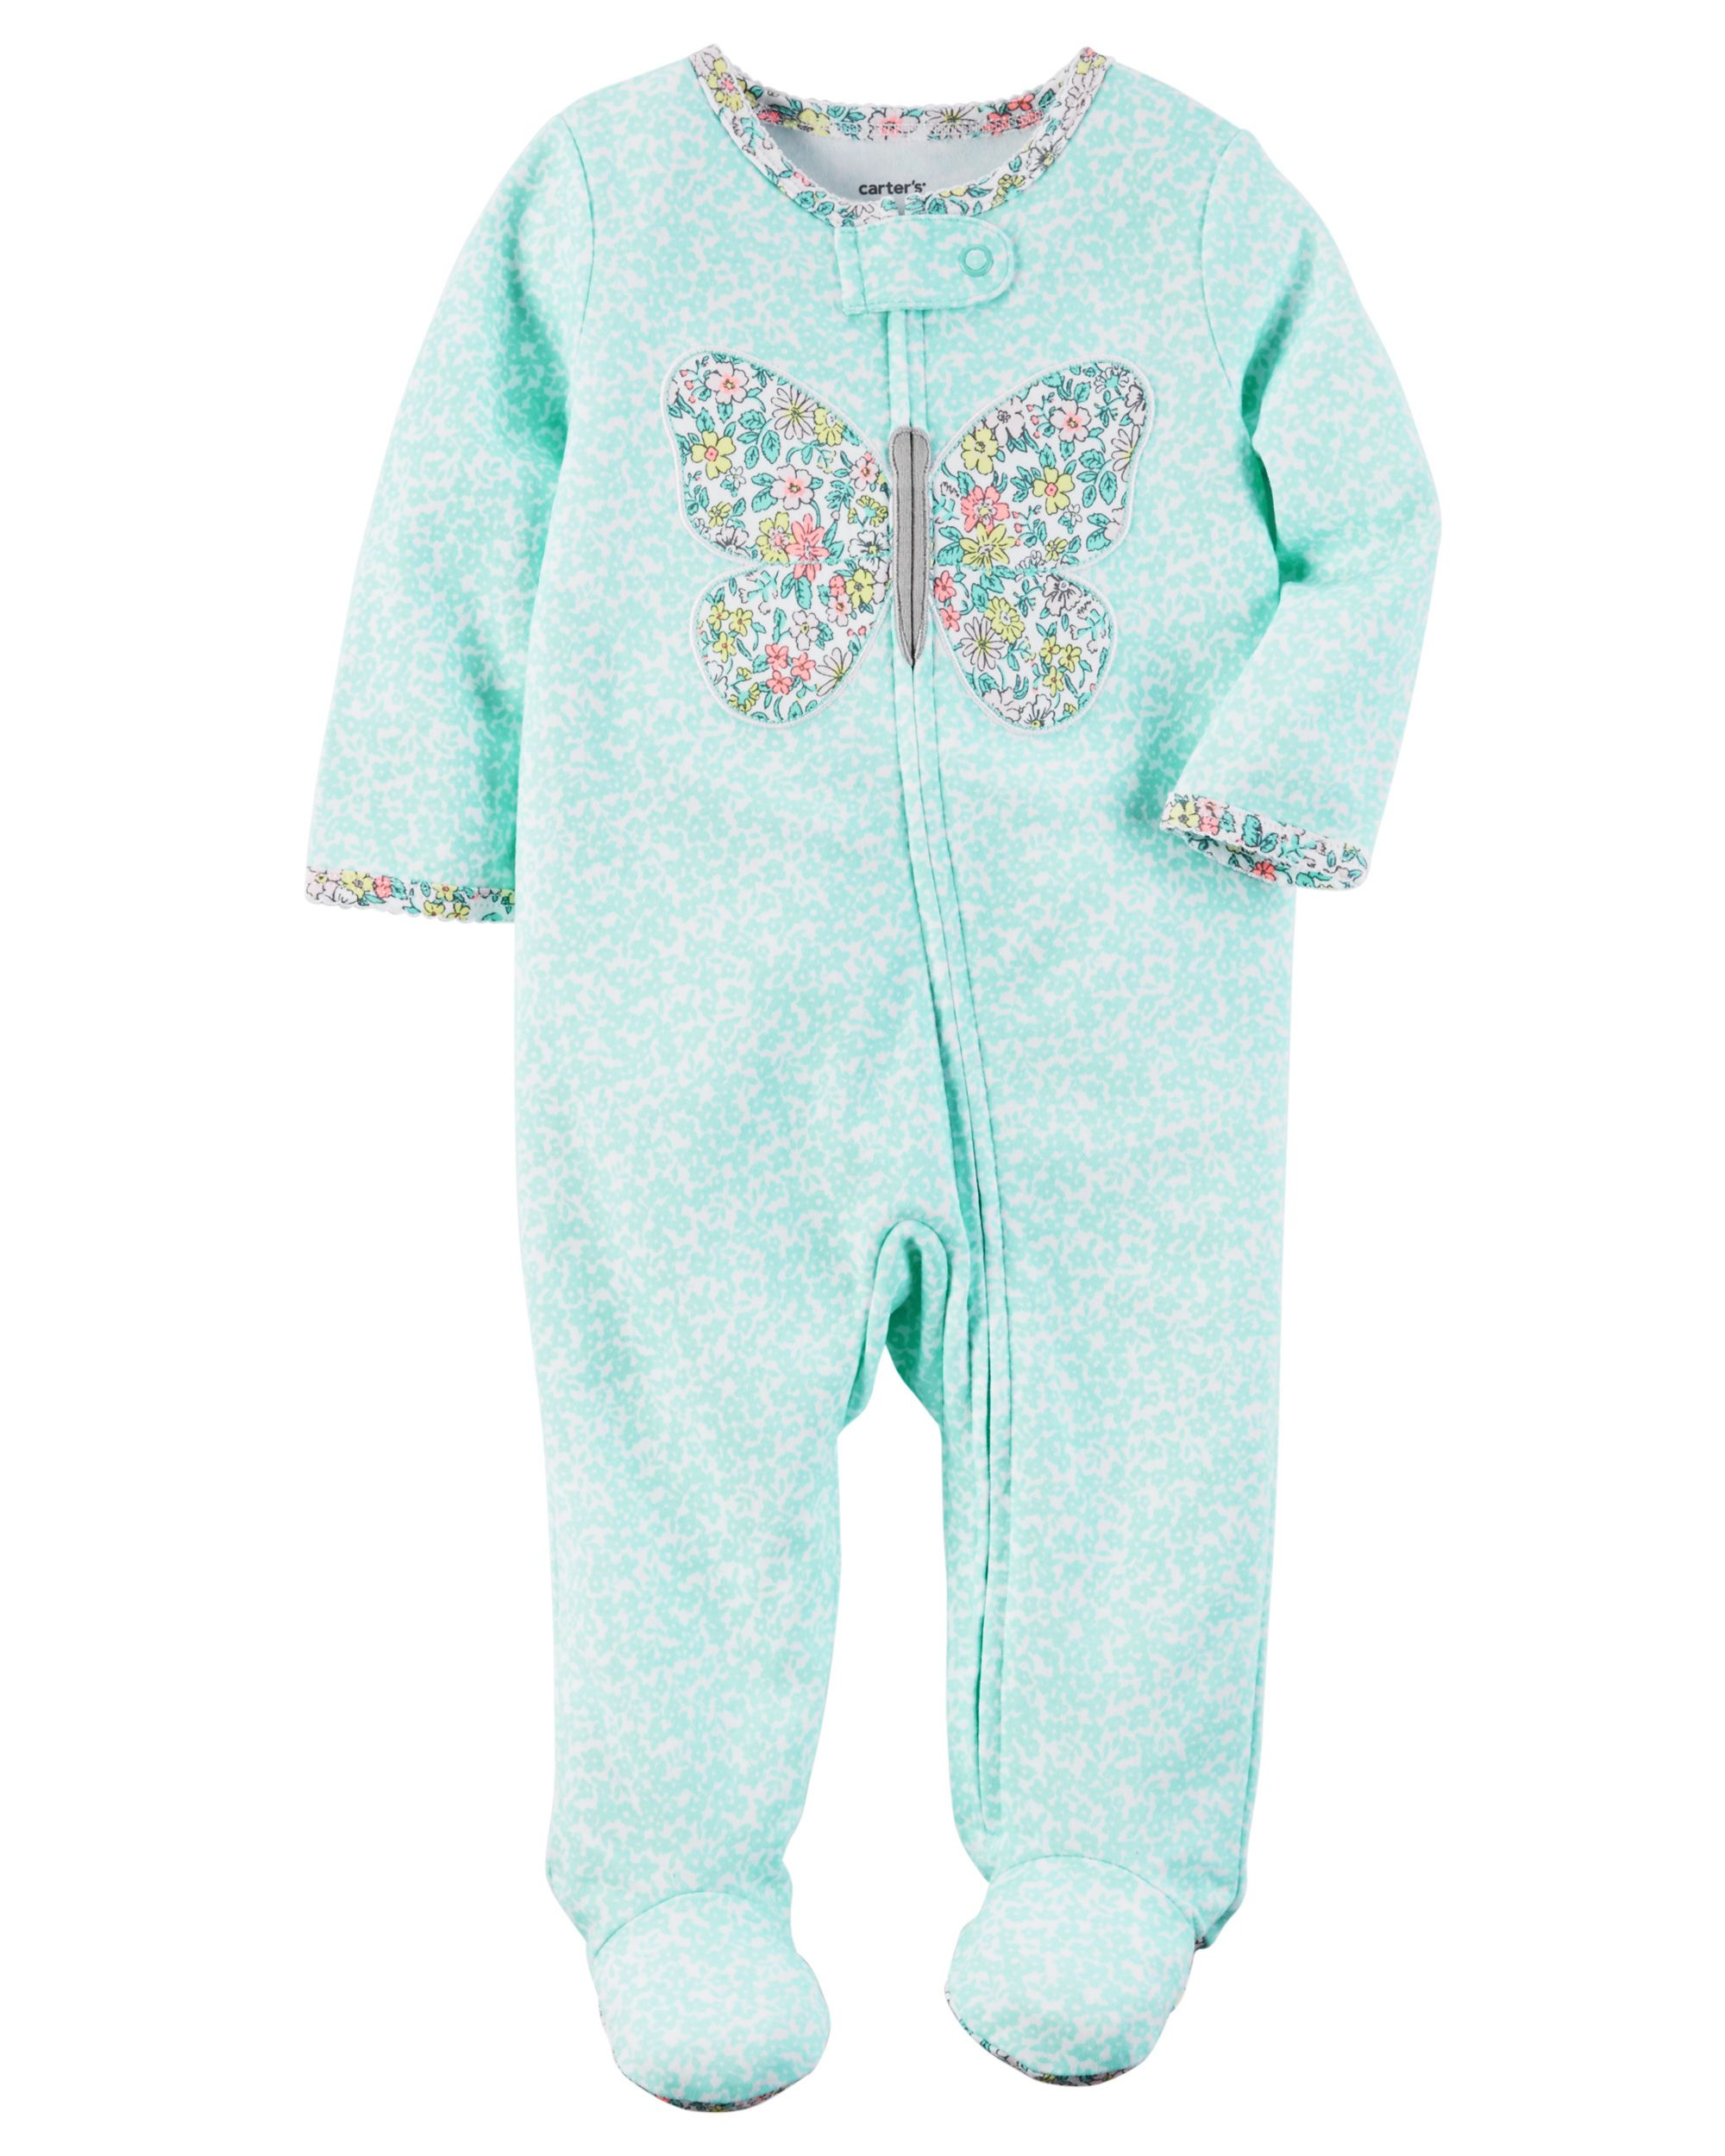 903809738c Baby Girl Cotton Zip-Up Sleep   Play from Carters.com. Shop clothing    accessories from a trusted name in kids